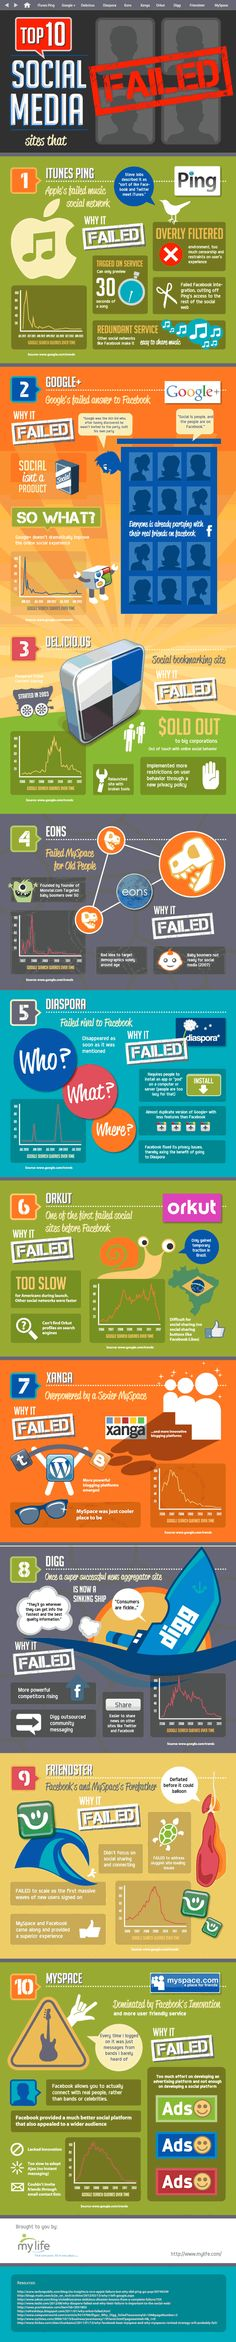 Top 10 Social Media #Infographic